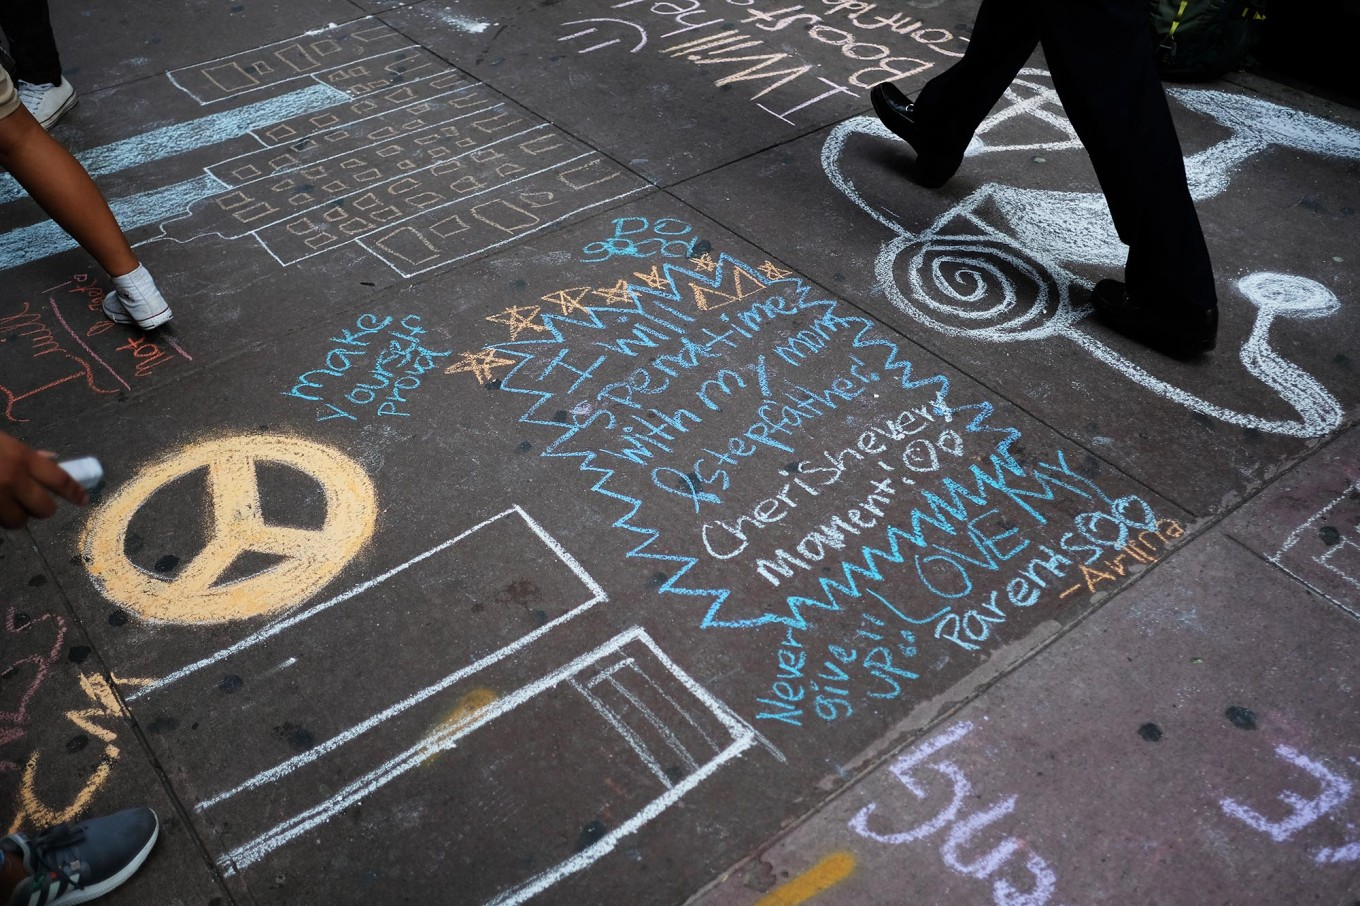 High school students draw the Twin Towers and write messages on the sidewalk in front of their school on September 11, 2017 in New York, in observance of 16th anniversary of the September 11, 2001 attacks. The attack, deadliest ever on US soil, killed 2,997 people, and plunged the United States into a chain of rolling wars against Islamic militants.  AFP/ Jewel Samad